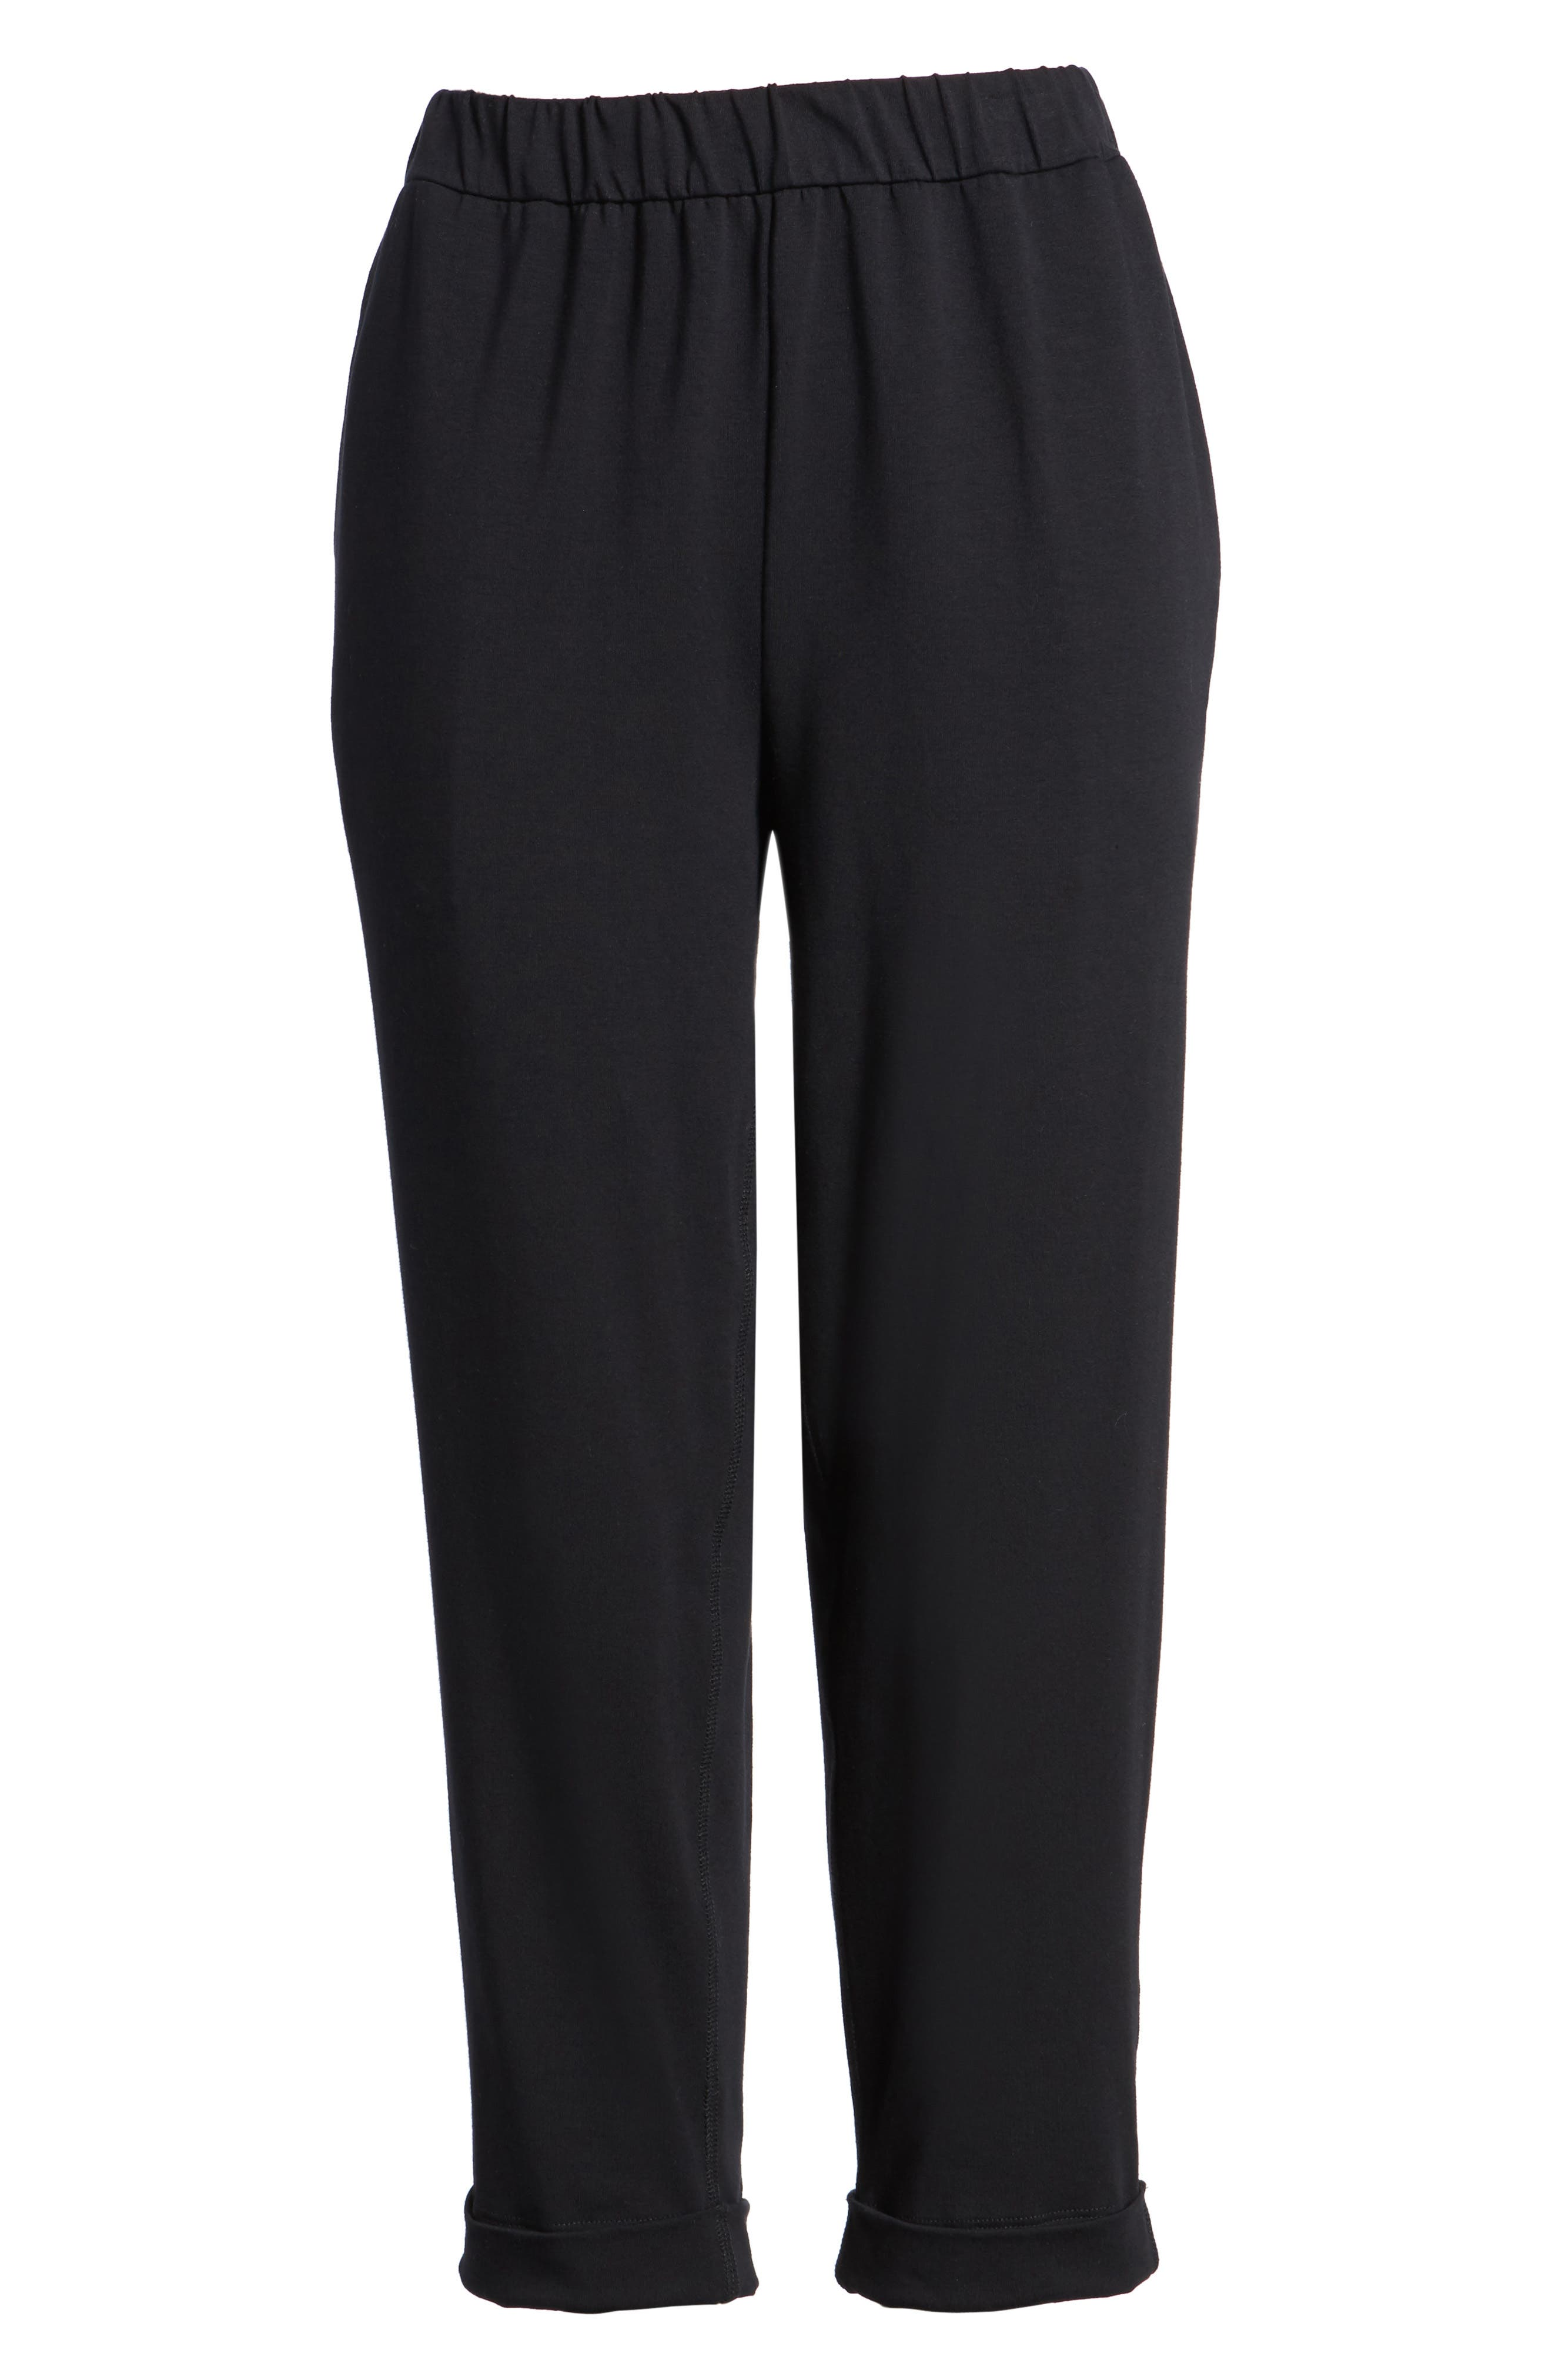 Stretch Organic Cotton Crop Pants,                             Alternate thumbnail 7, color,                             Black